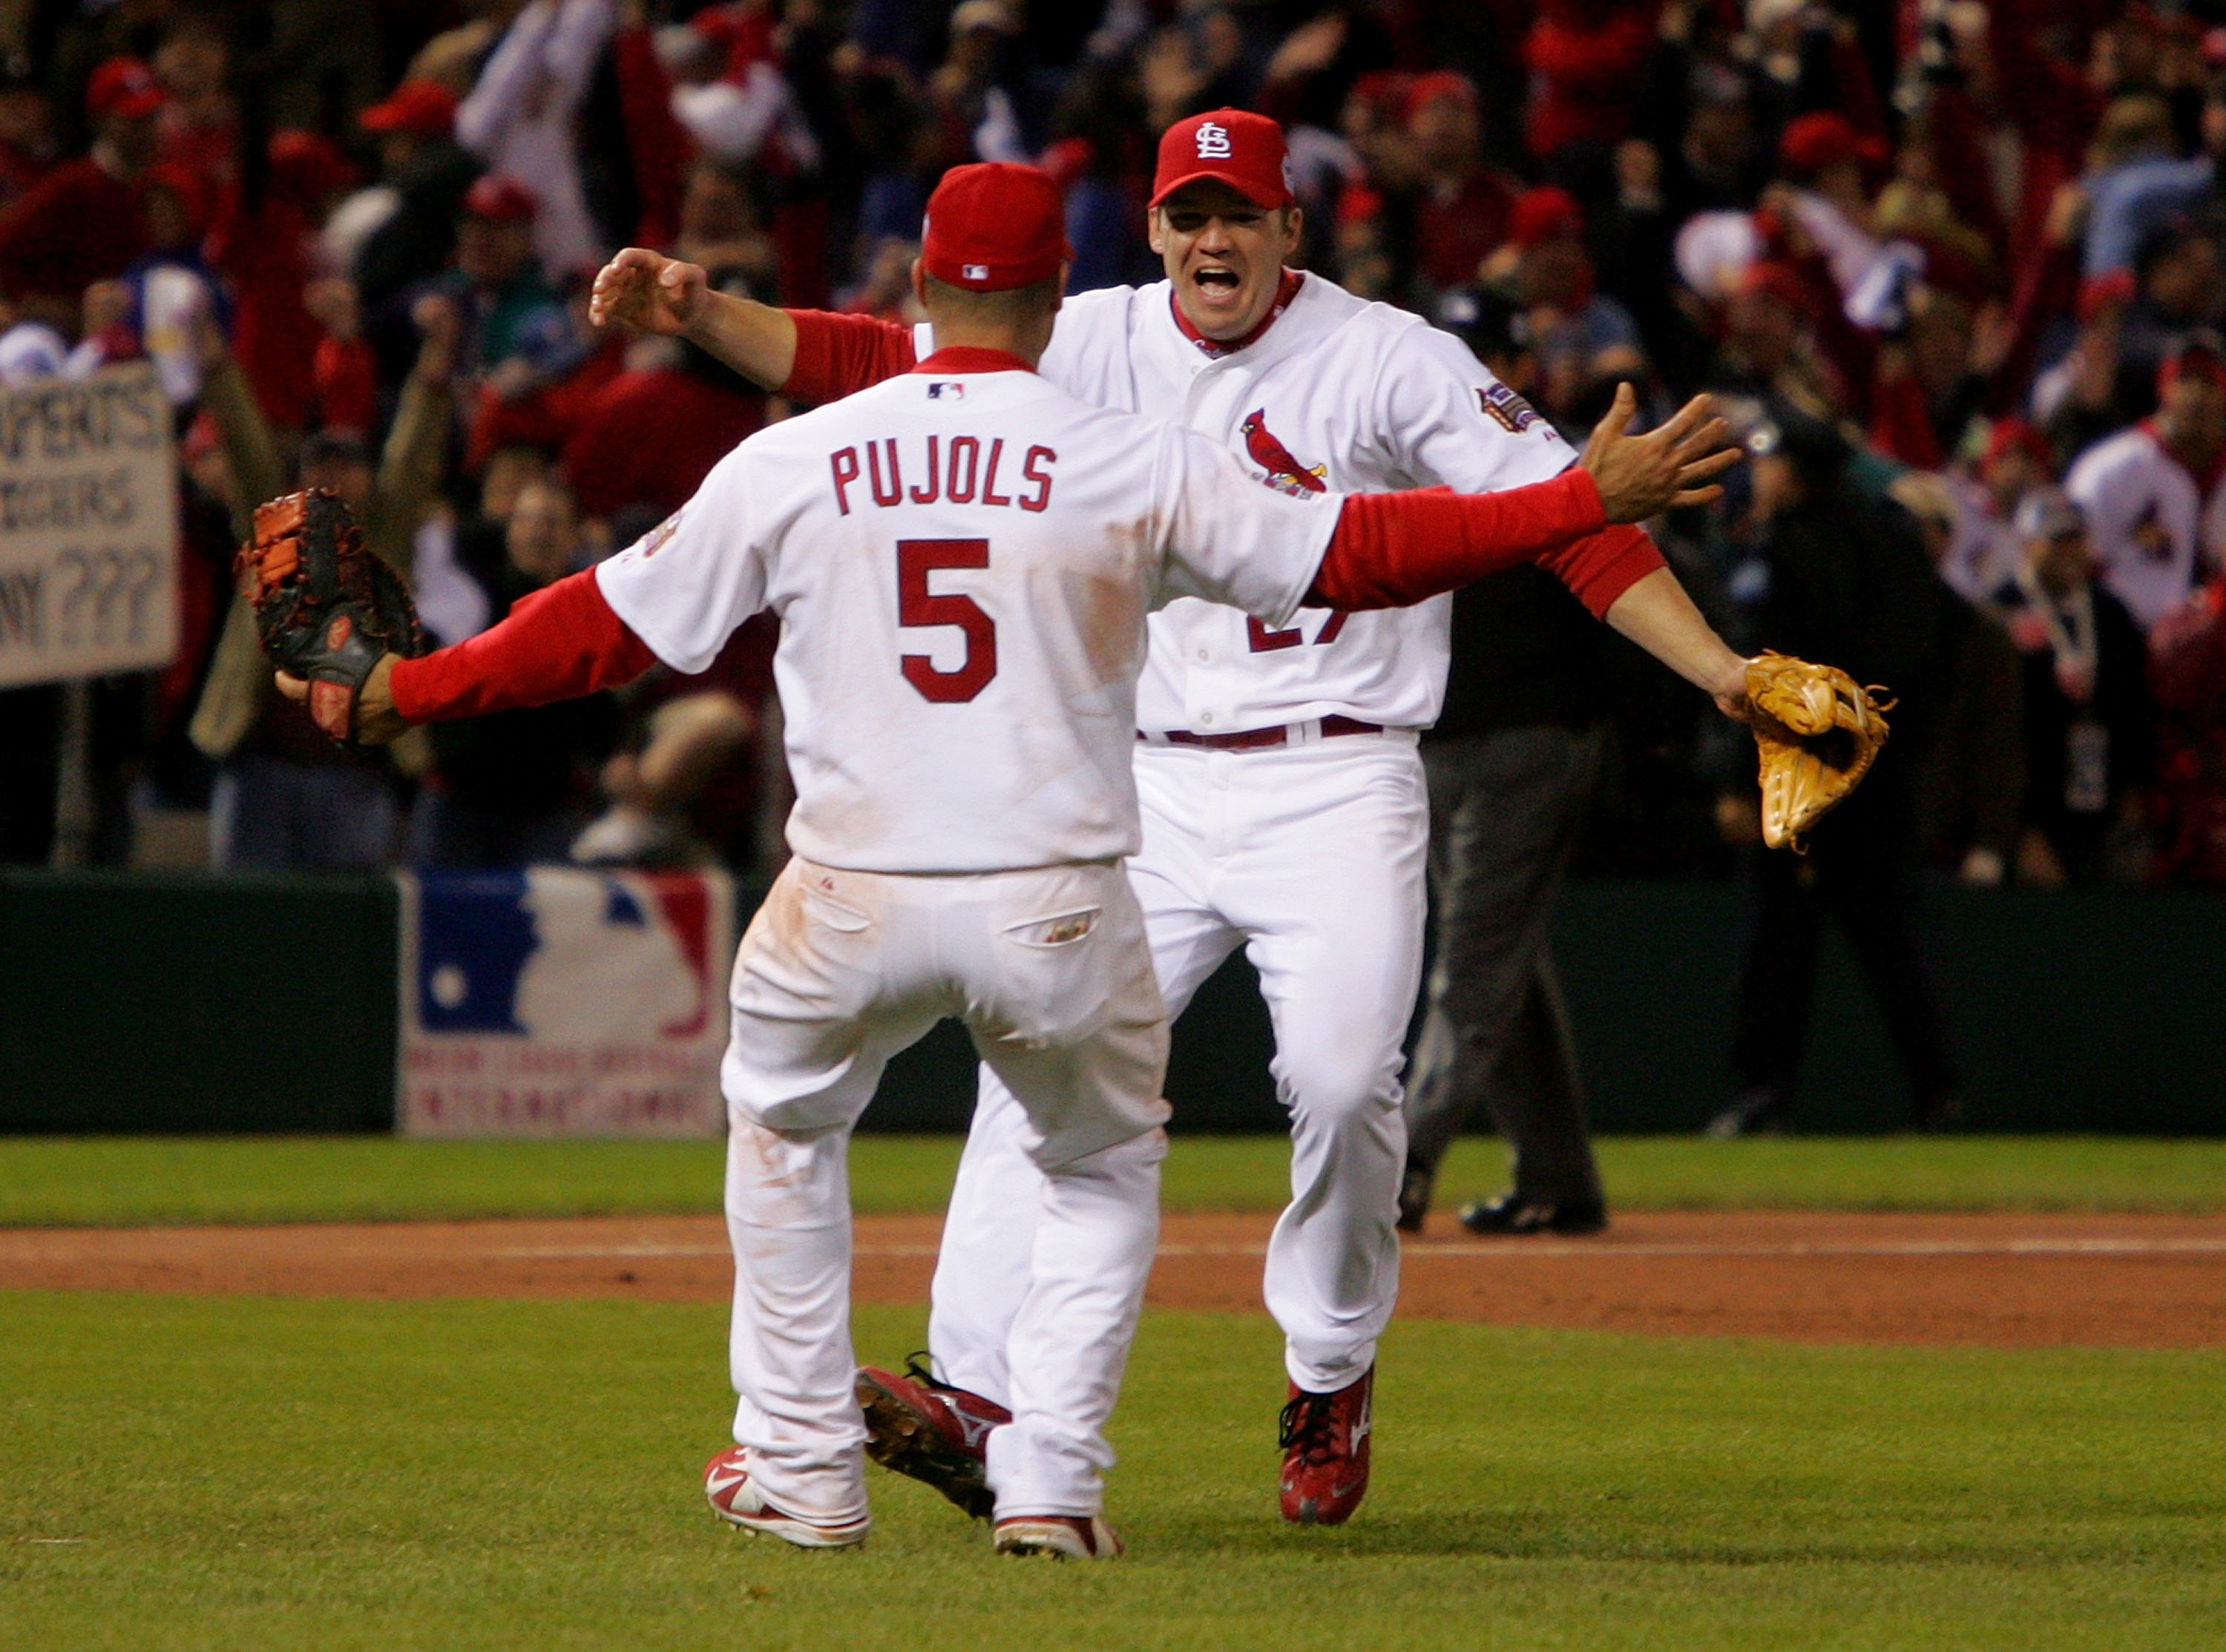 ST LOUIS, MO - OCTOBER 27:  Scott Rolen #27 and Albert Pujols #5 of the St. Louis Cardinals celebrate after defeating the Detroit Tigers in Game Five of the 2006 World Series on October 27, 2006 at Busch Stadium in St. Louis, Missouri.  The Cardinals defe